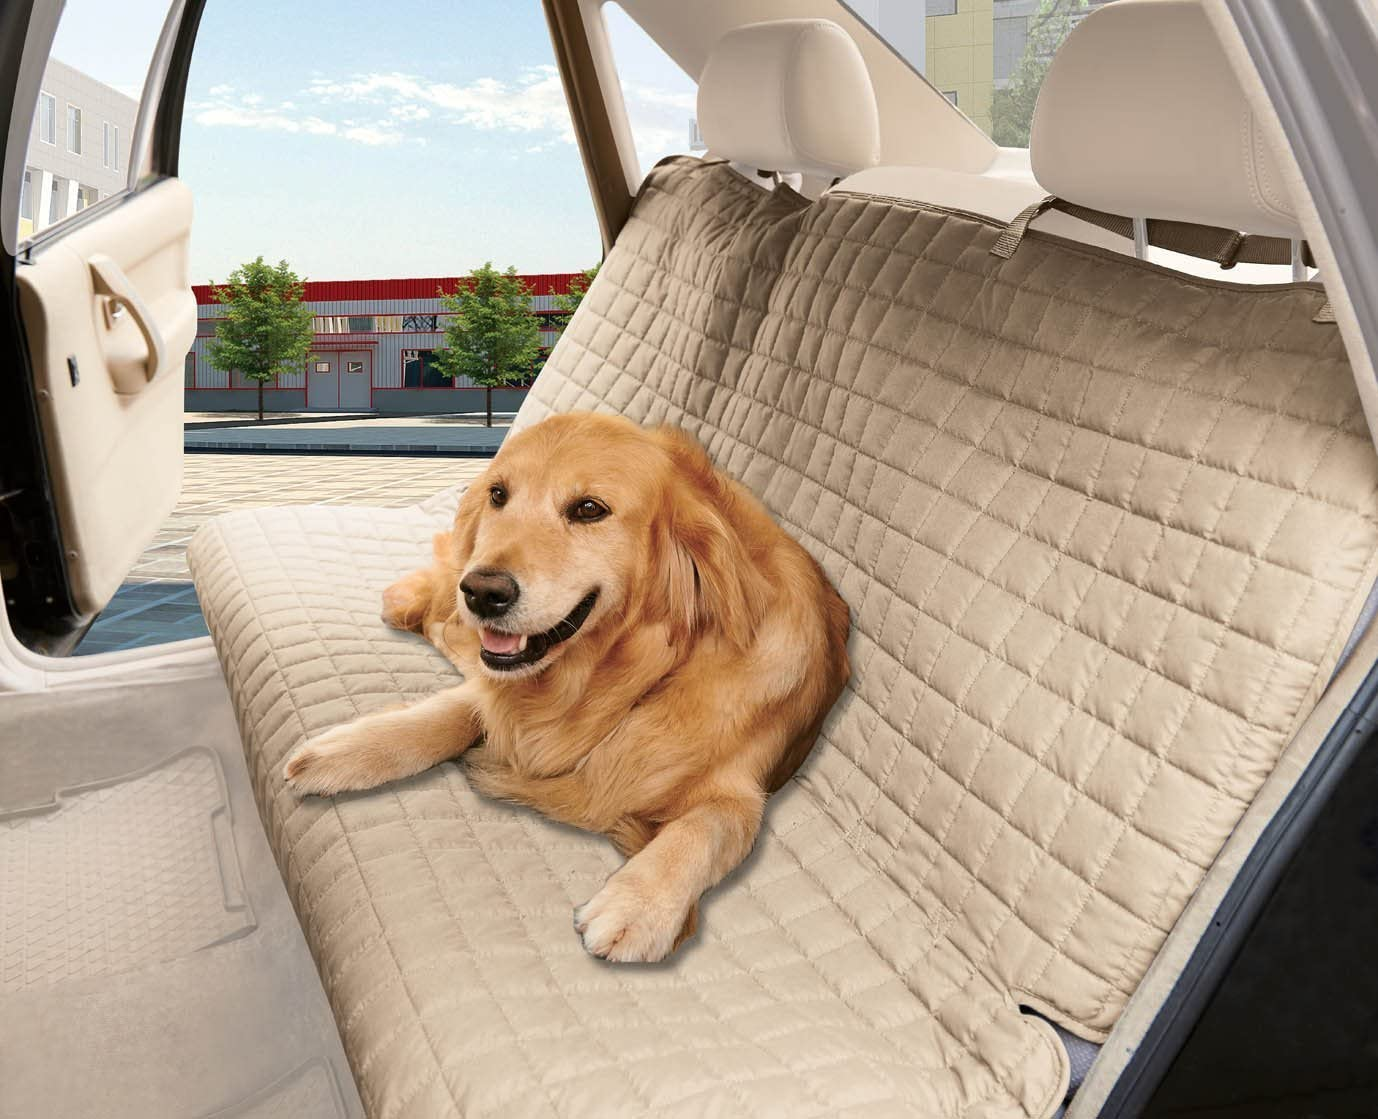 MattRest Quilted 100 Waterproof Premium Quality Bench Car Seat Protector Cover Entire Rear Seat for Pets – Ties to Stop Slipping Off The Bench